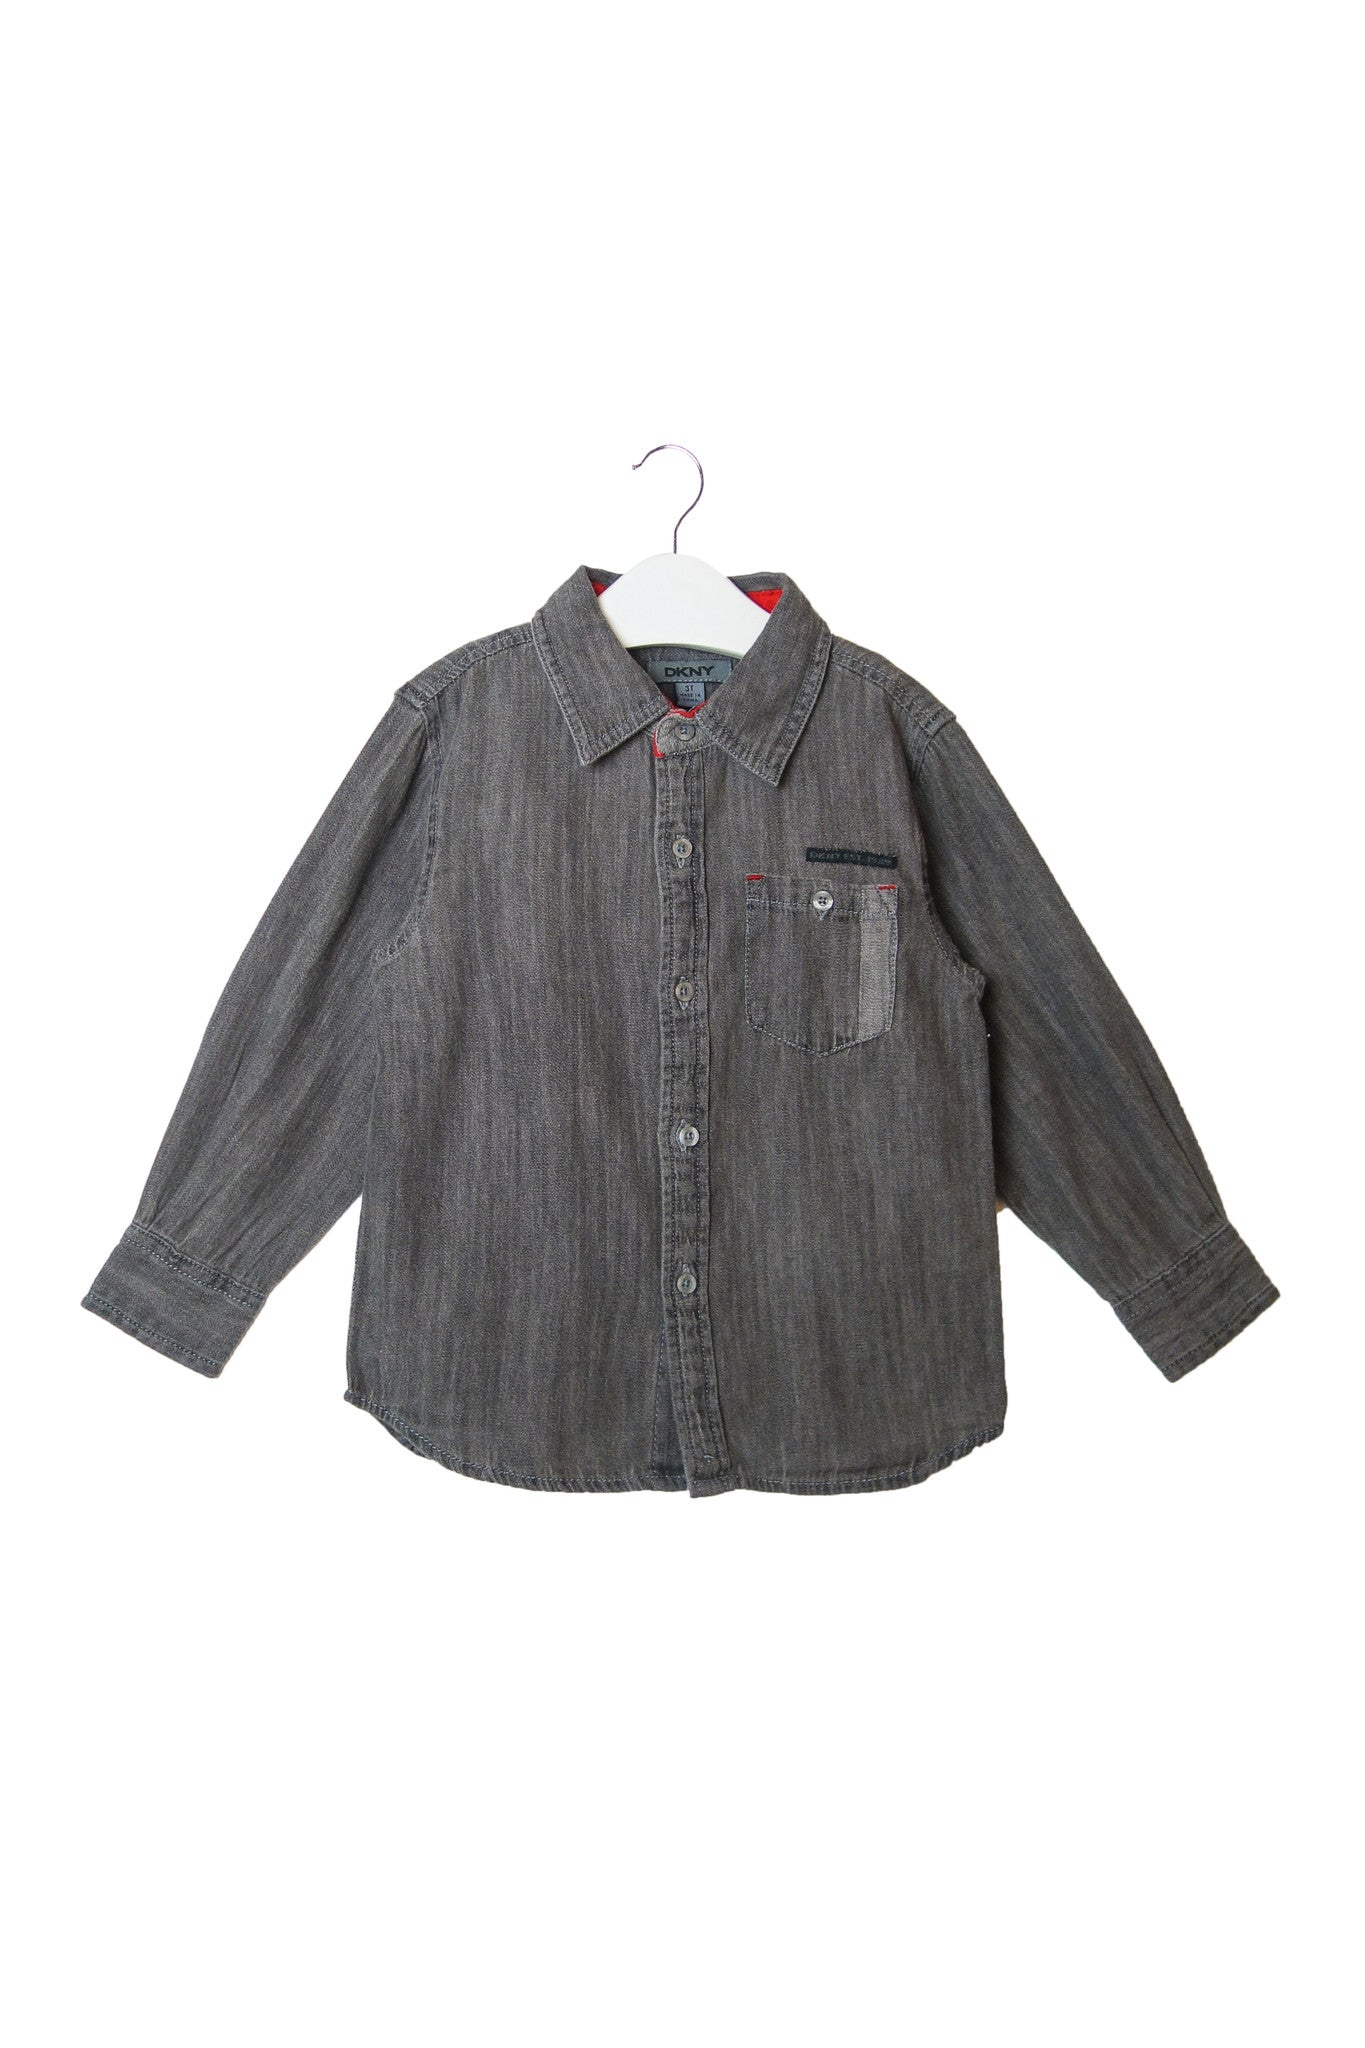 10003305 DKNY Kids~Shirt 3T at Retykle